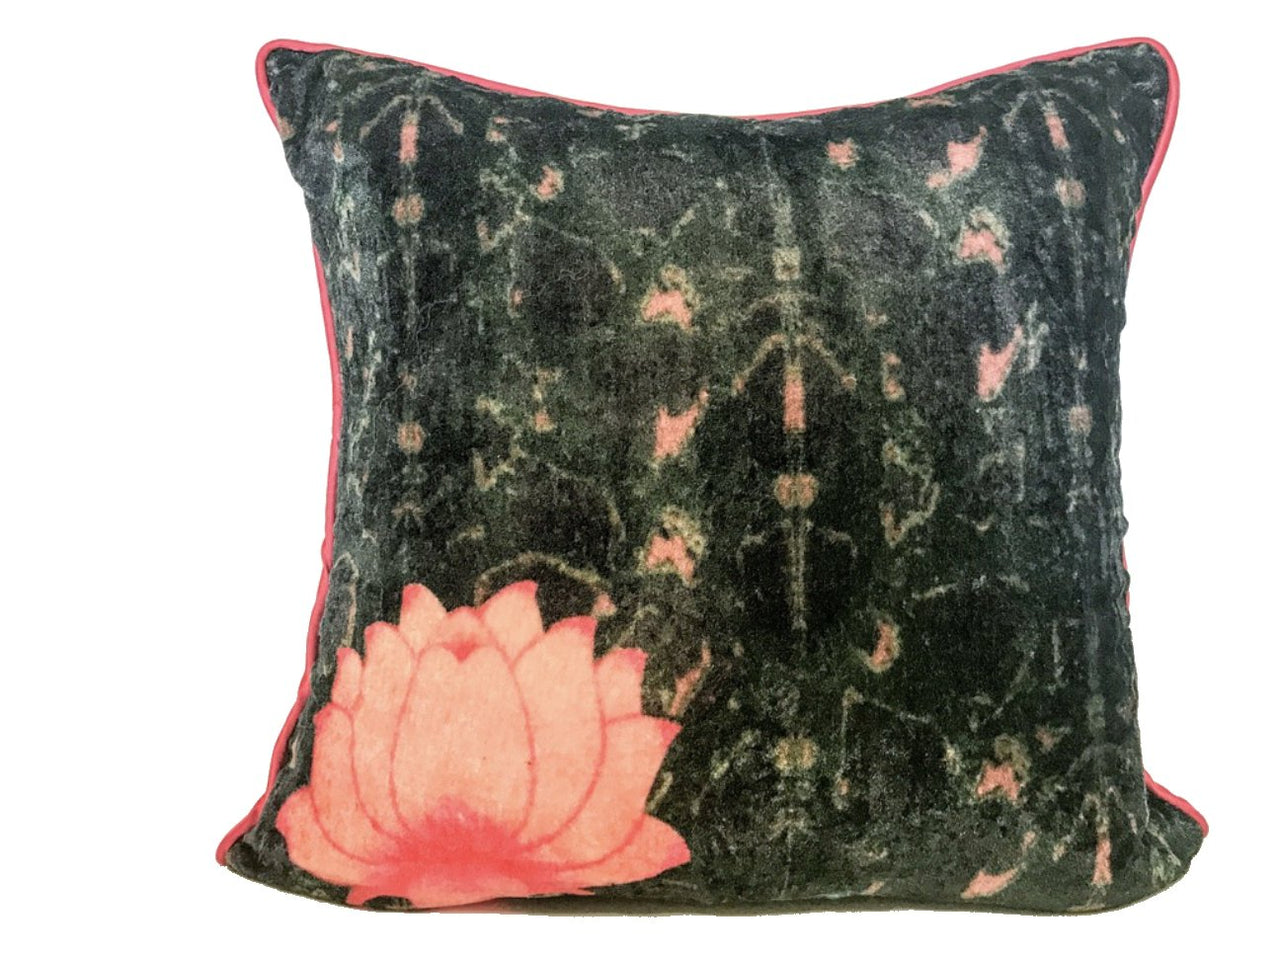 Velvet Cushion 20x20 Lotus Flower on Dark Background - Maison Fusion